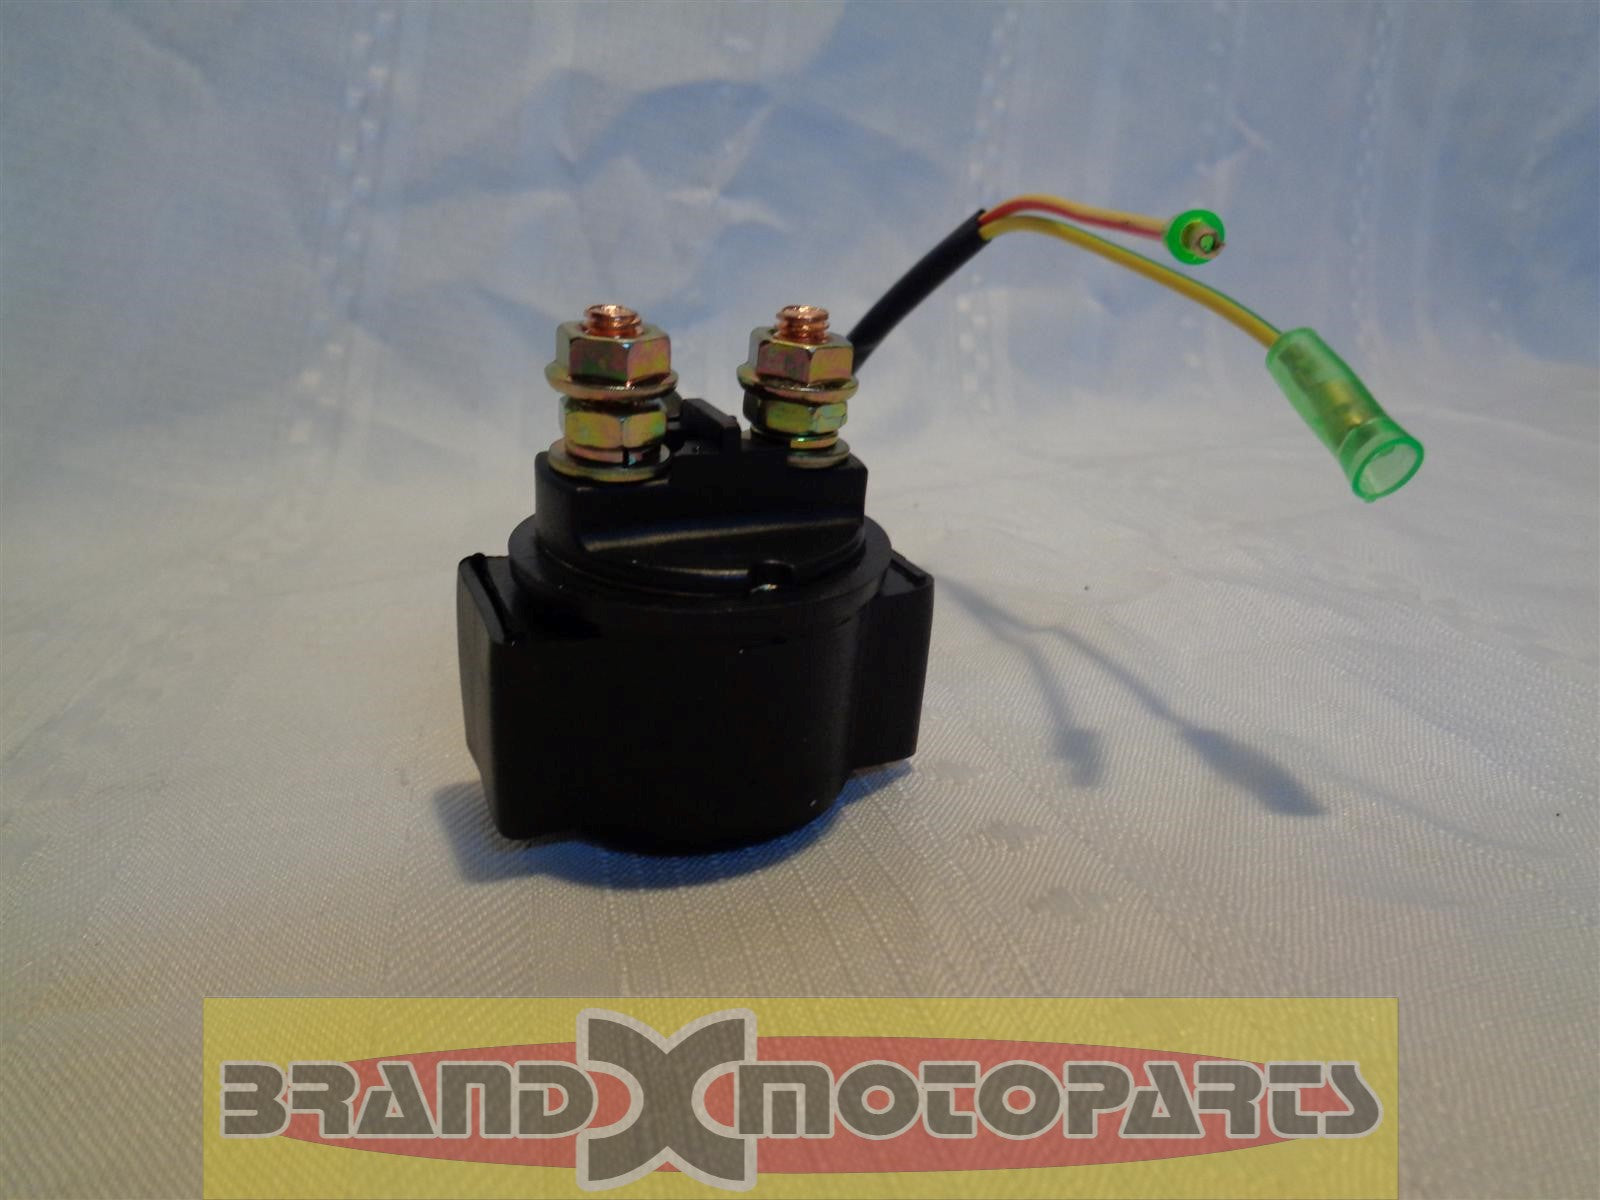 New Starter solenoid / relay for 50cc - 250cc